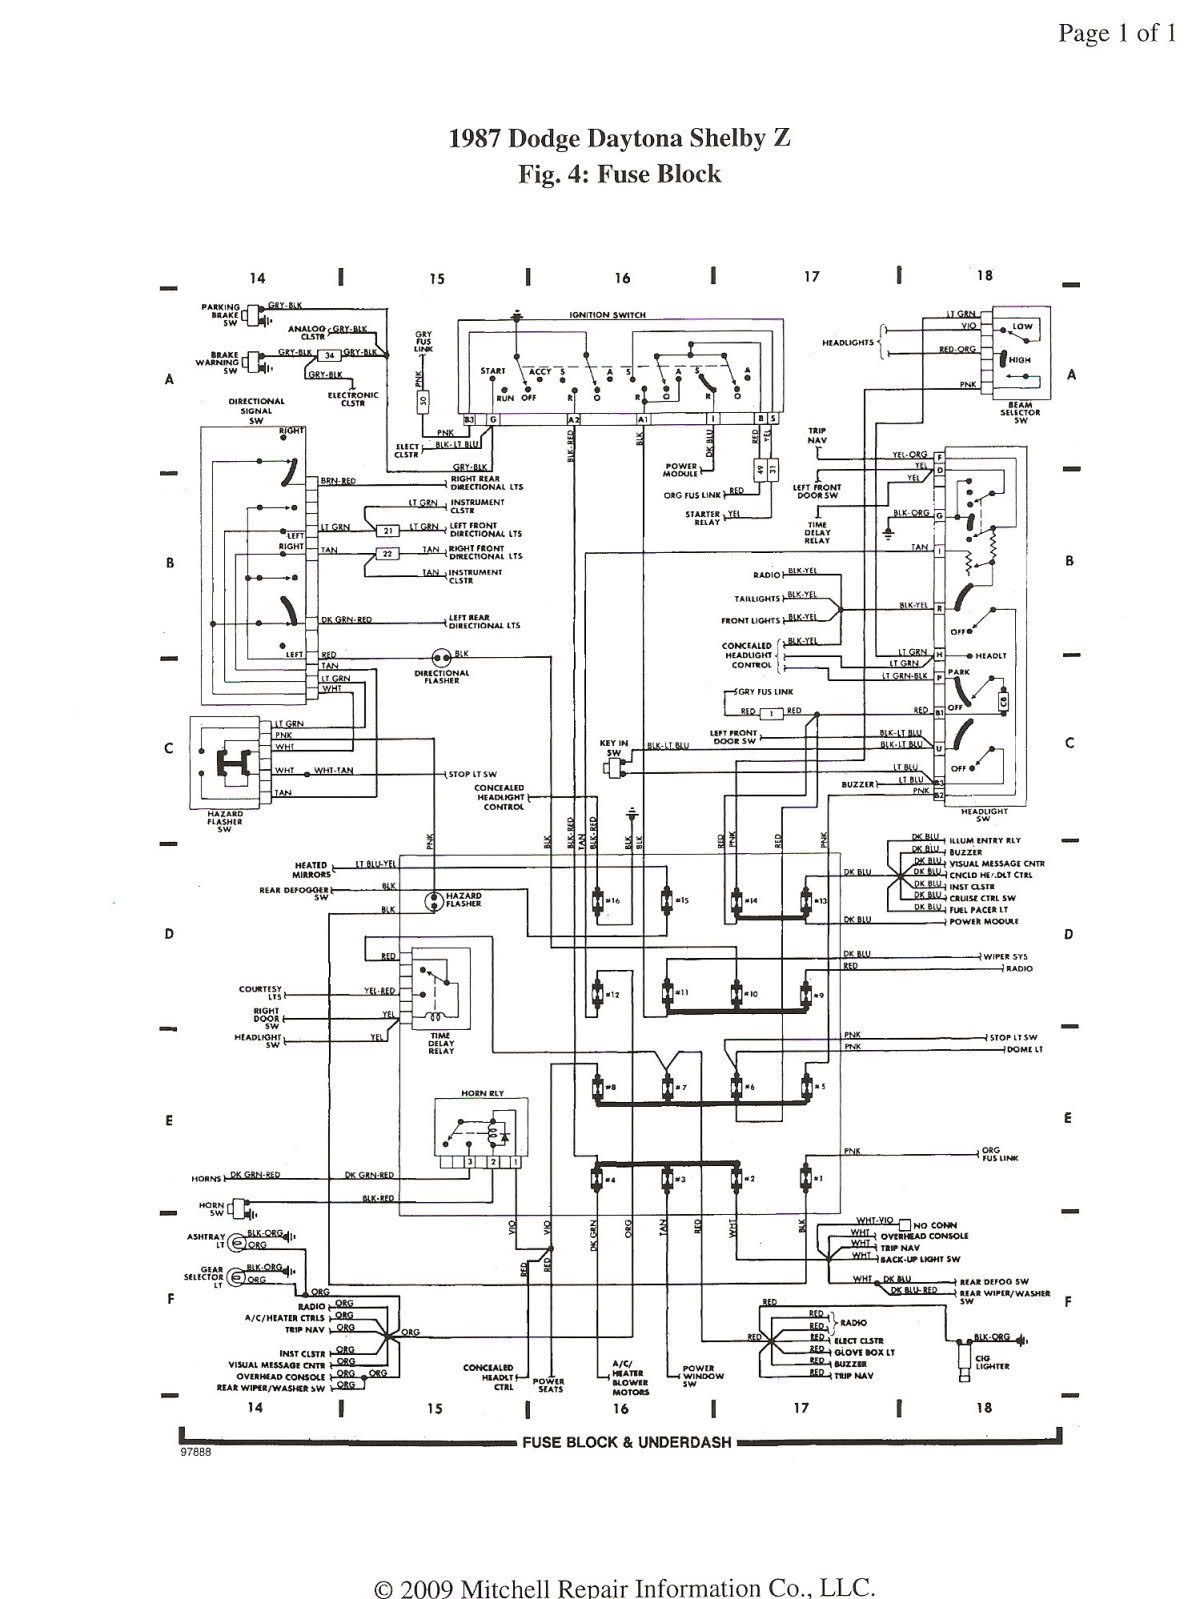 auto wiring diagram 1987 dodge daytona shelby z fuse block 1987 dodge daytona shelby z fuse block